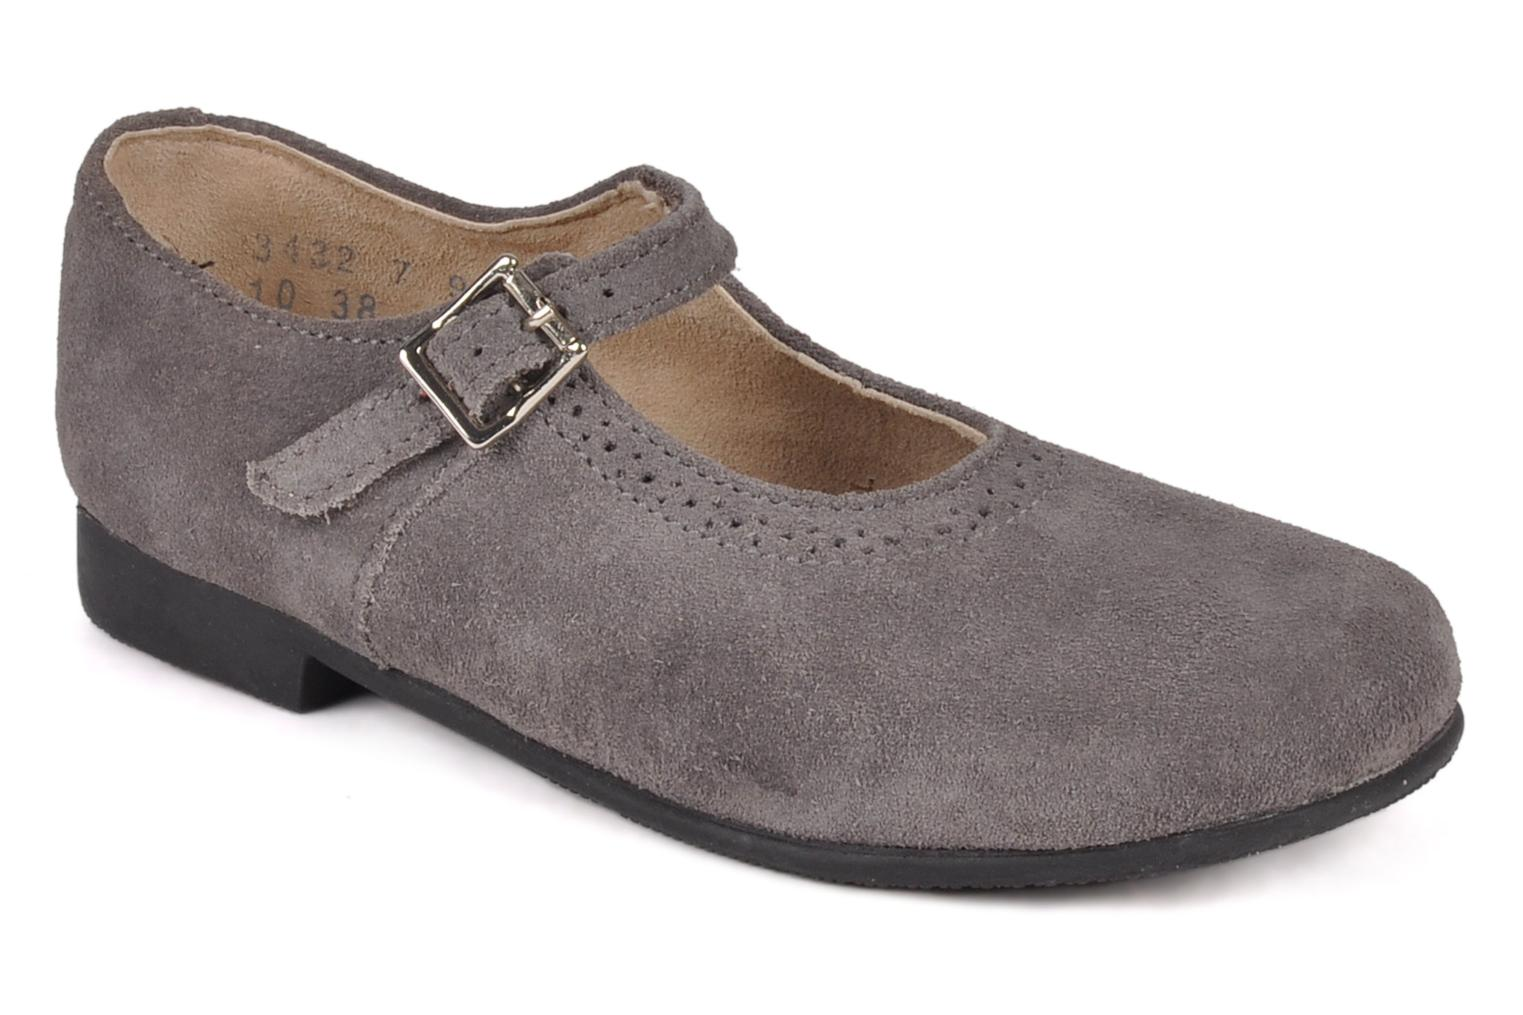 Clare Pewter suede